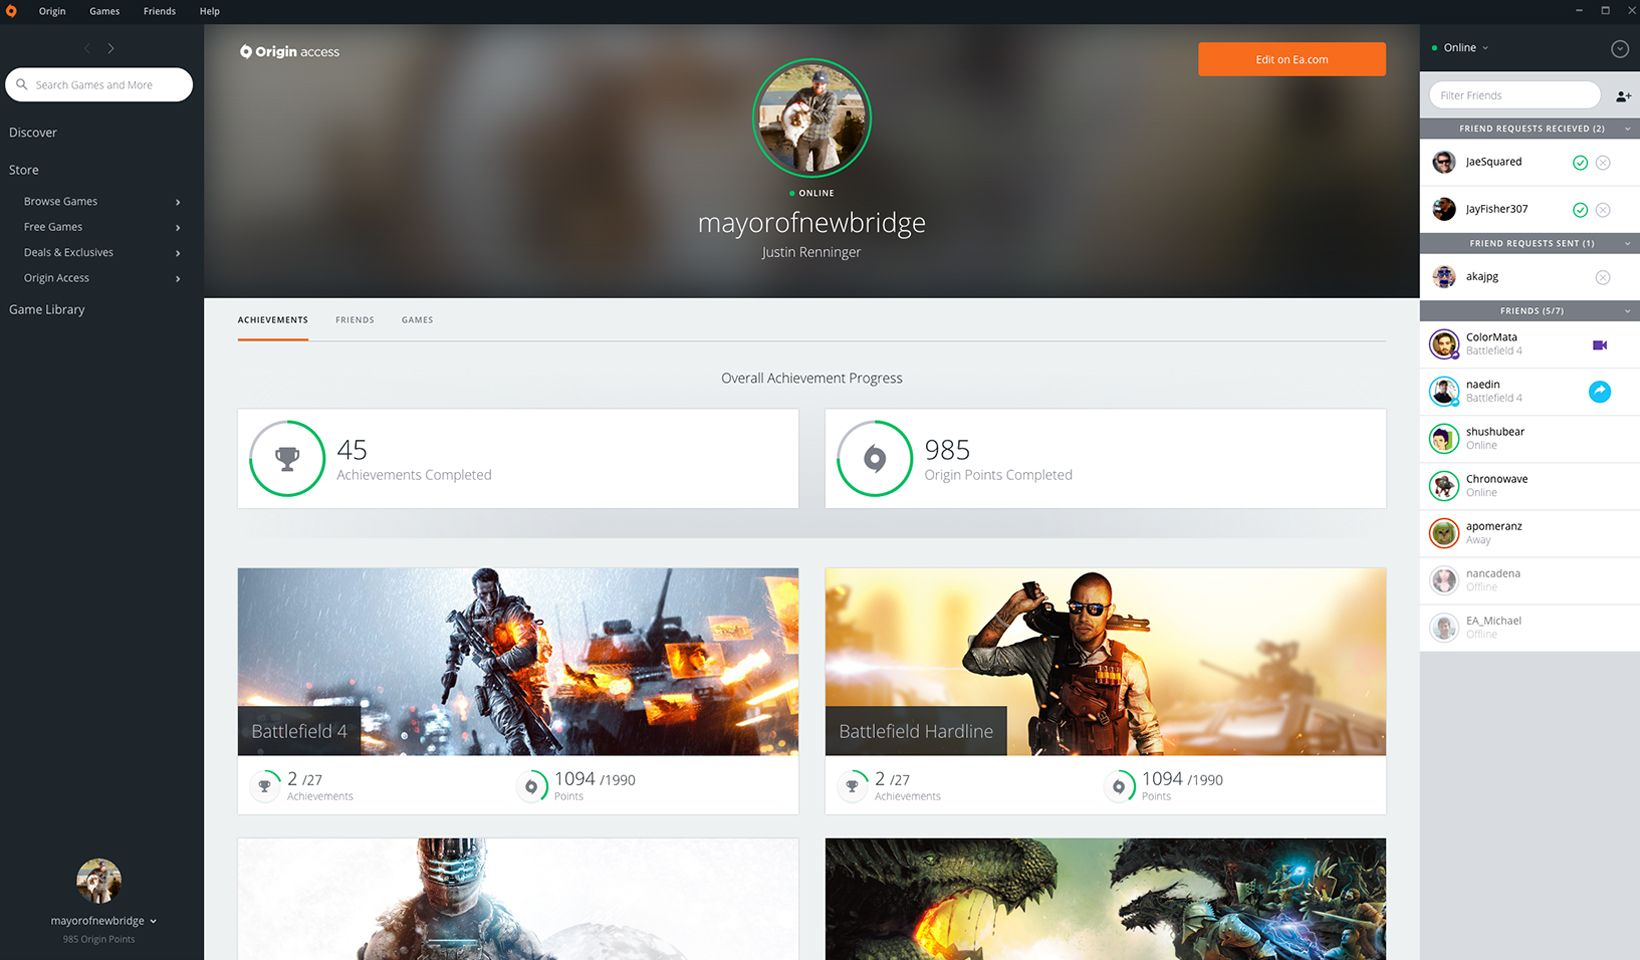 About Origin: Platform made for gaming | Origin